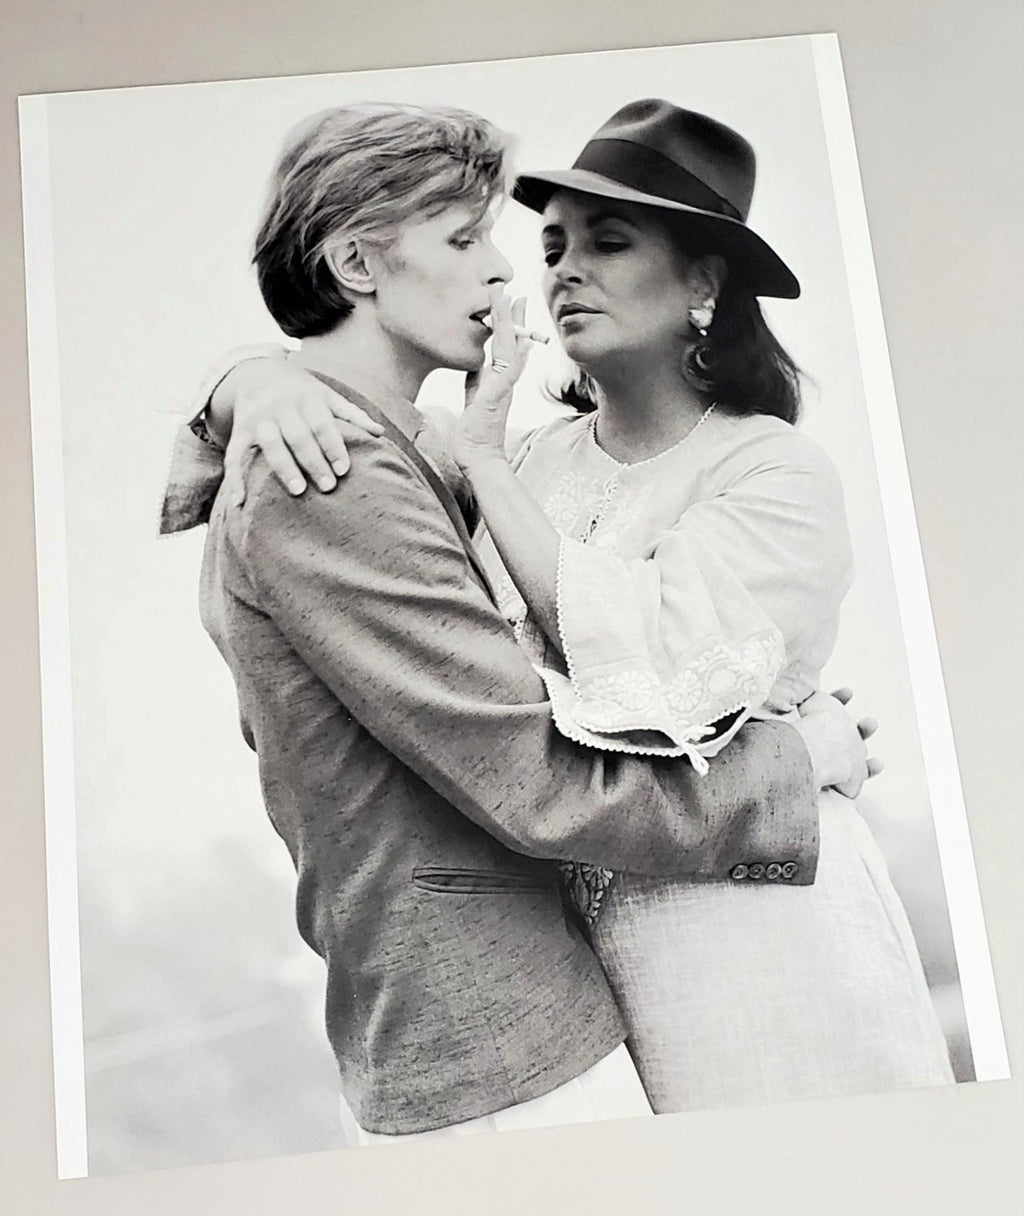 Photograph page of Bowie & Elizabeth Taylor in 1975 featured in 2010 David Bowie hardcover book by Jeff Hudson